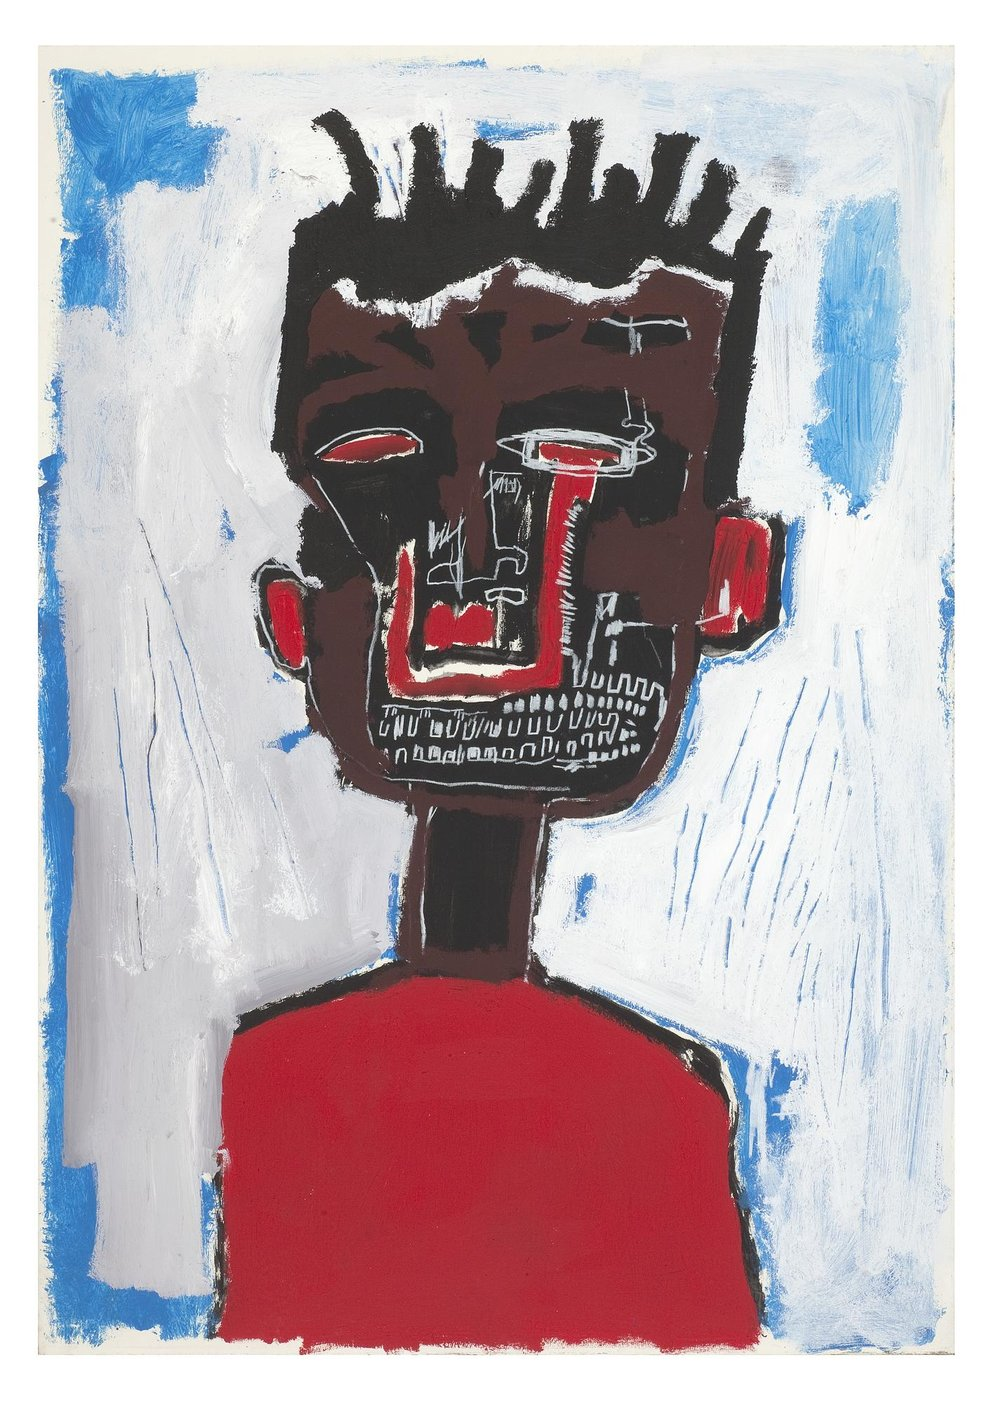 Jean-Michel Basquiat, Self-Portrait, 1984 / Courtesy Private Collection